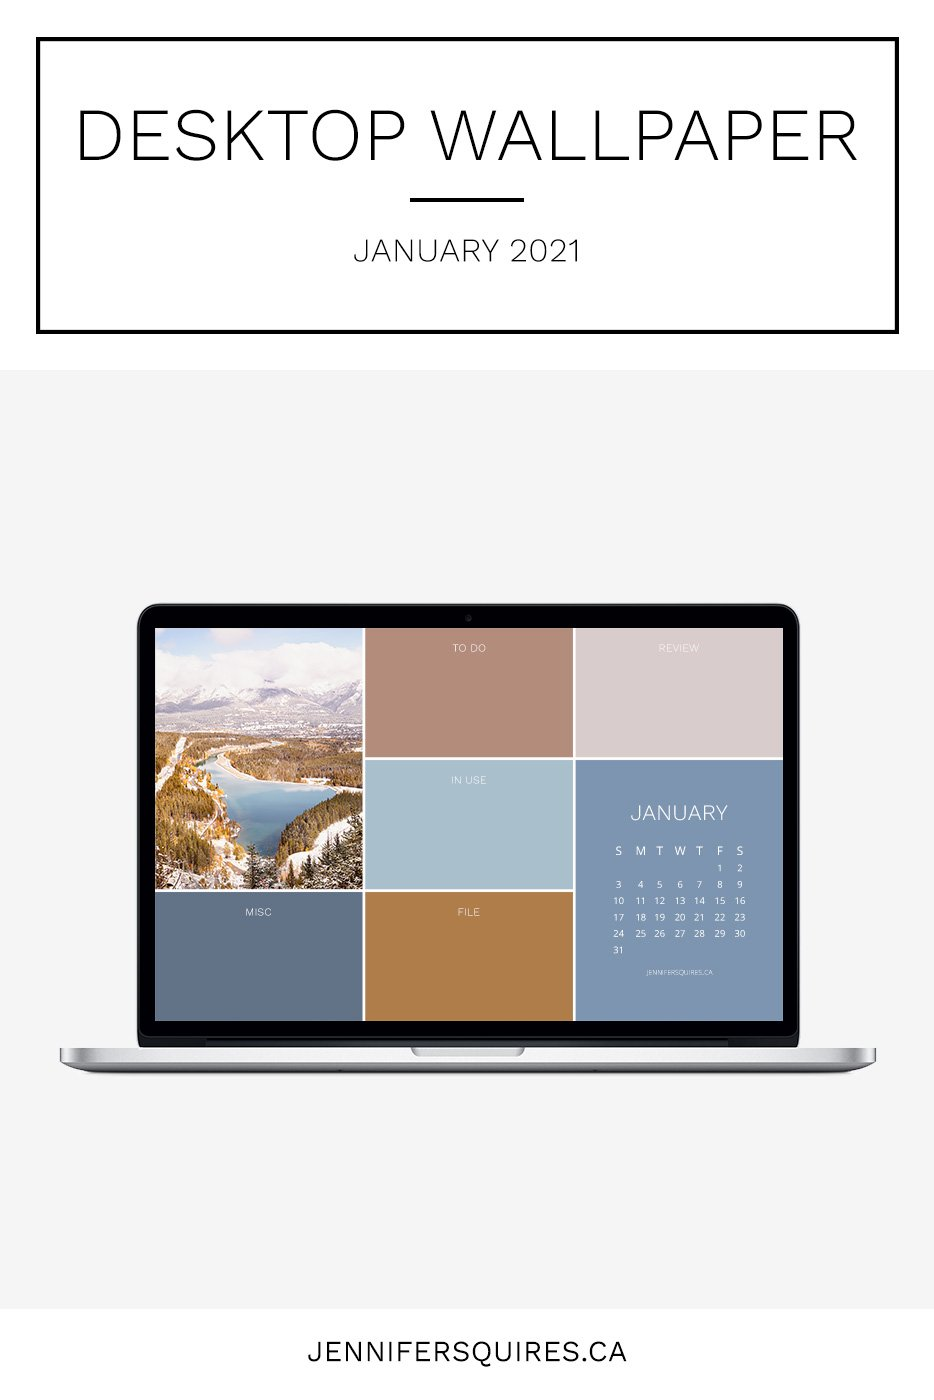 January 2021 Wallpaper with Calendar for iPhone and Desktop 934x1400